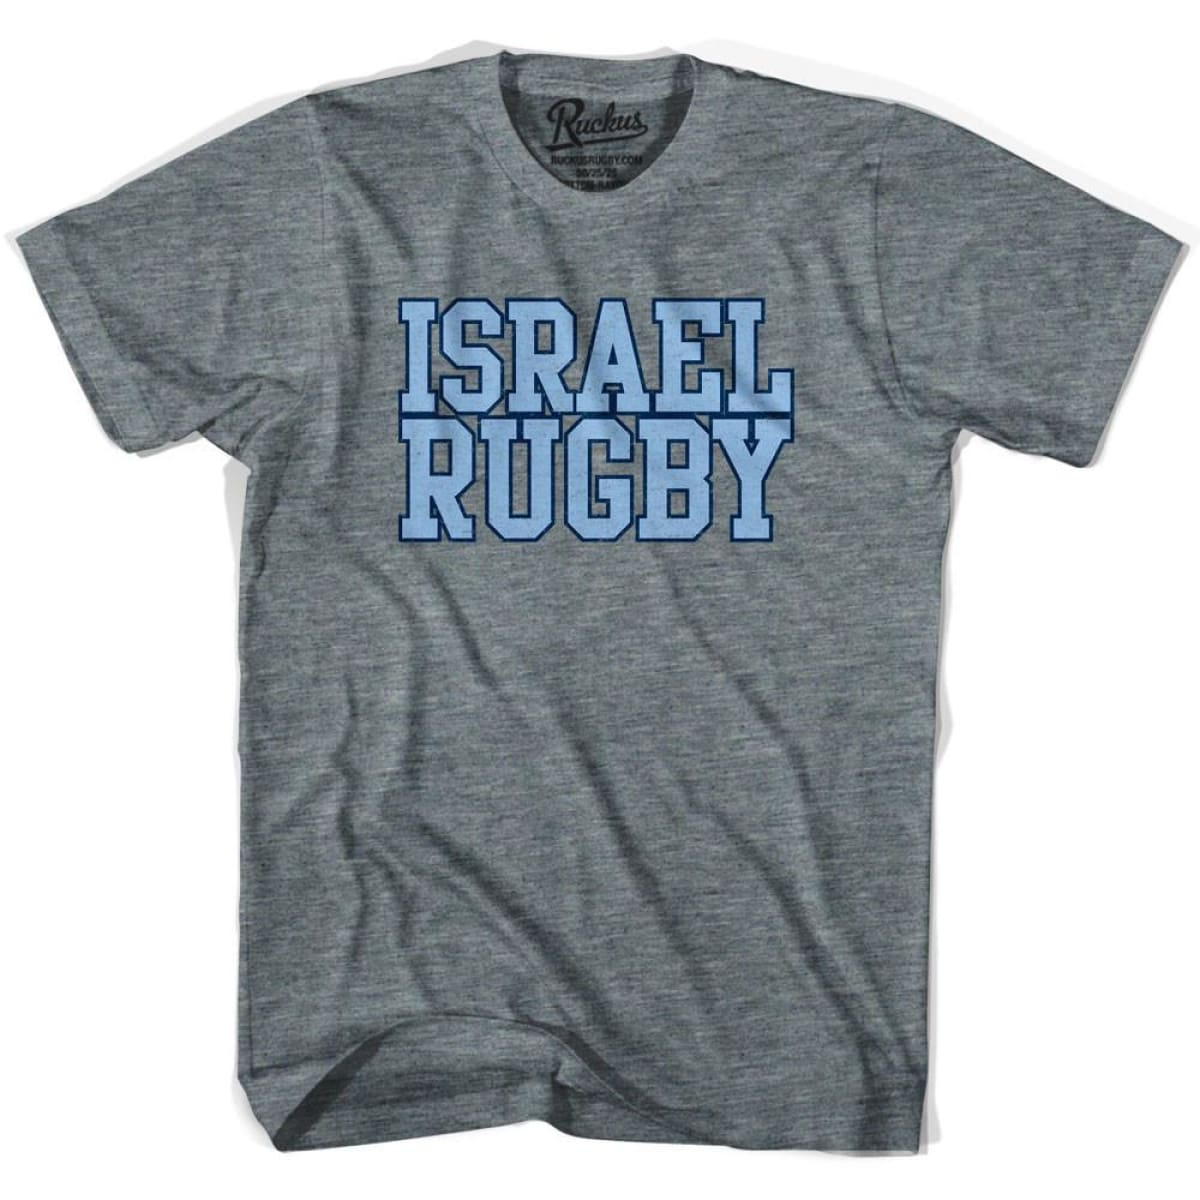 Israel Rugby Nations T-shirt - Athletic Grey / Adult Small - Rugby T-shirt